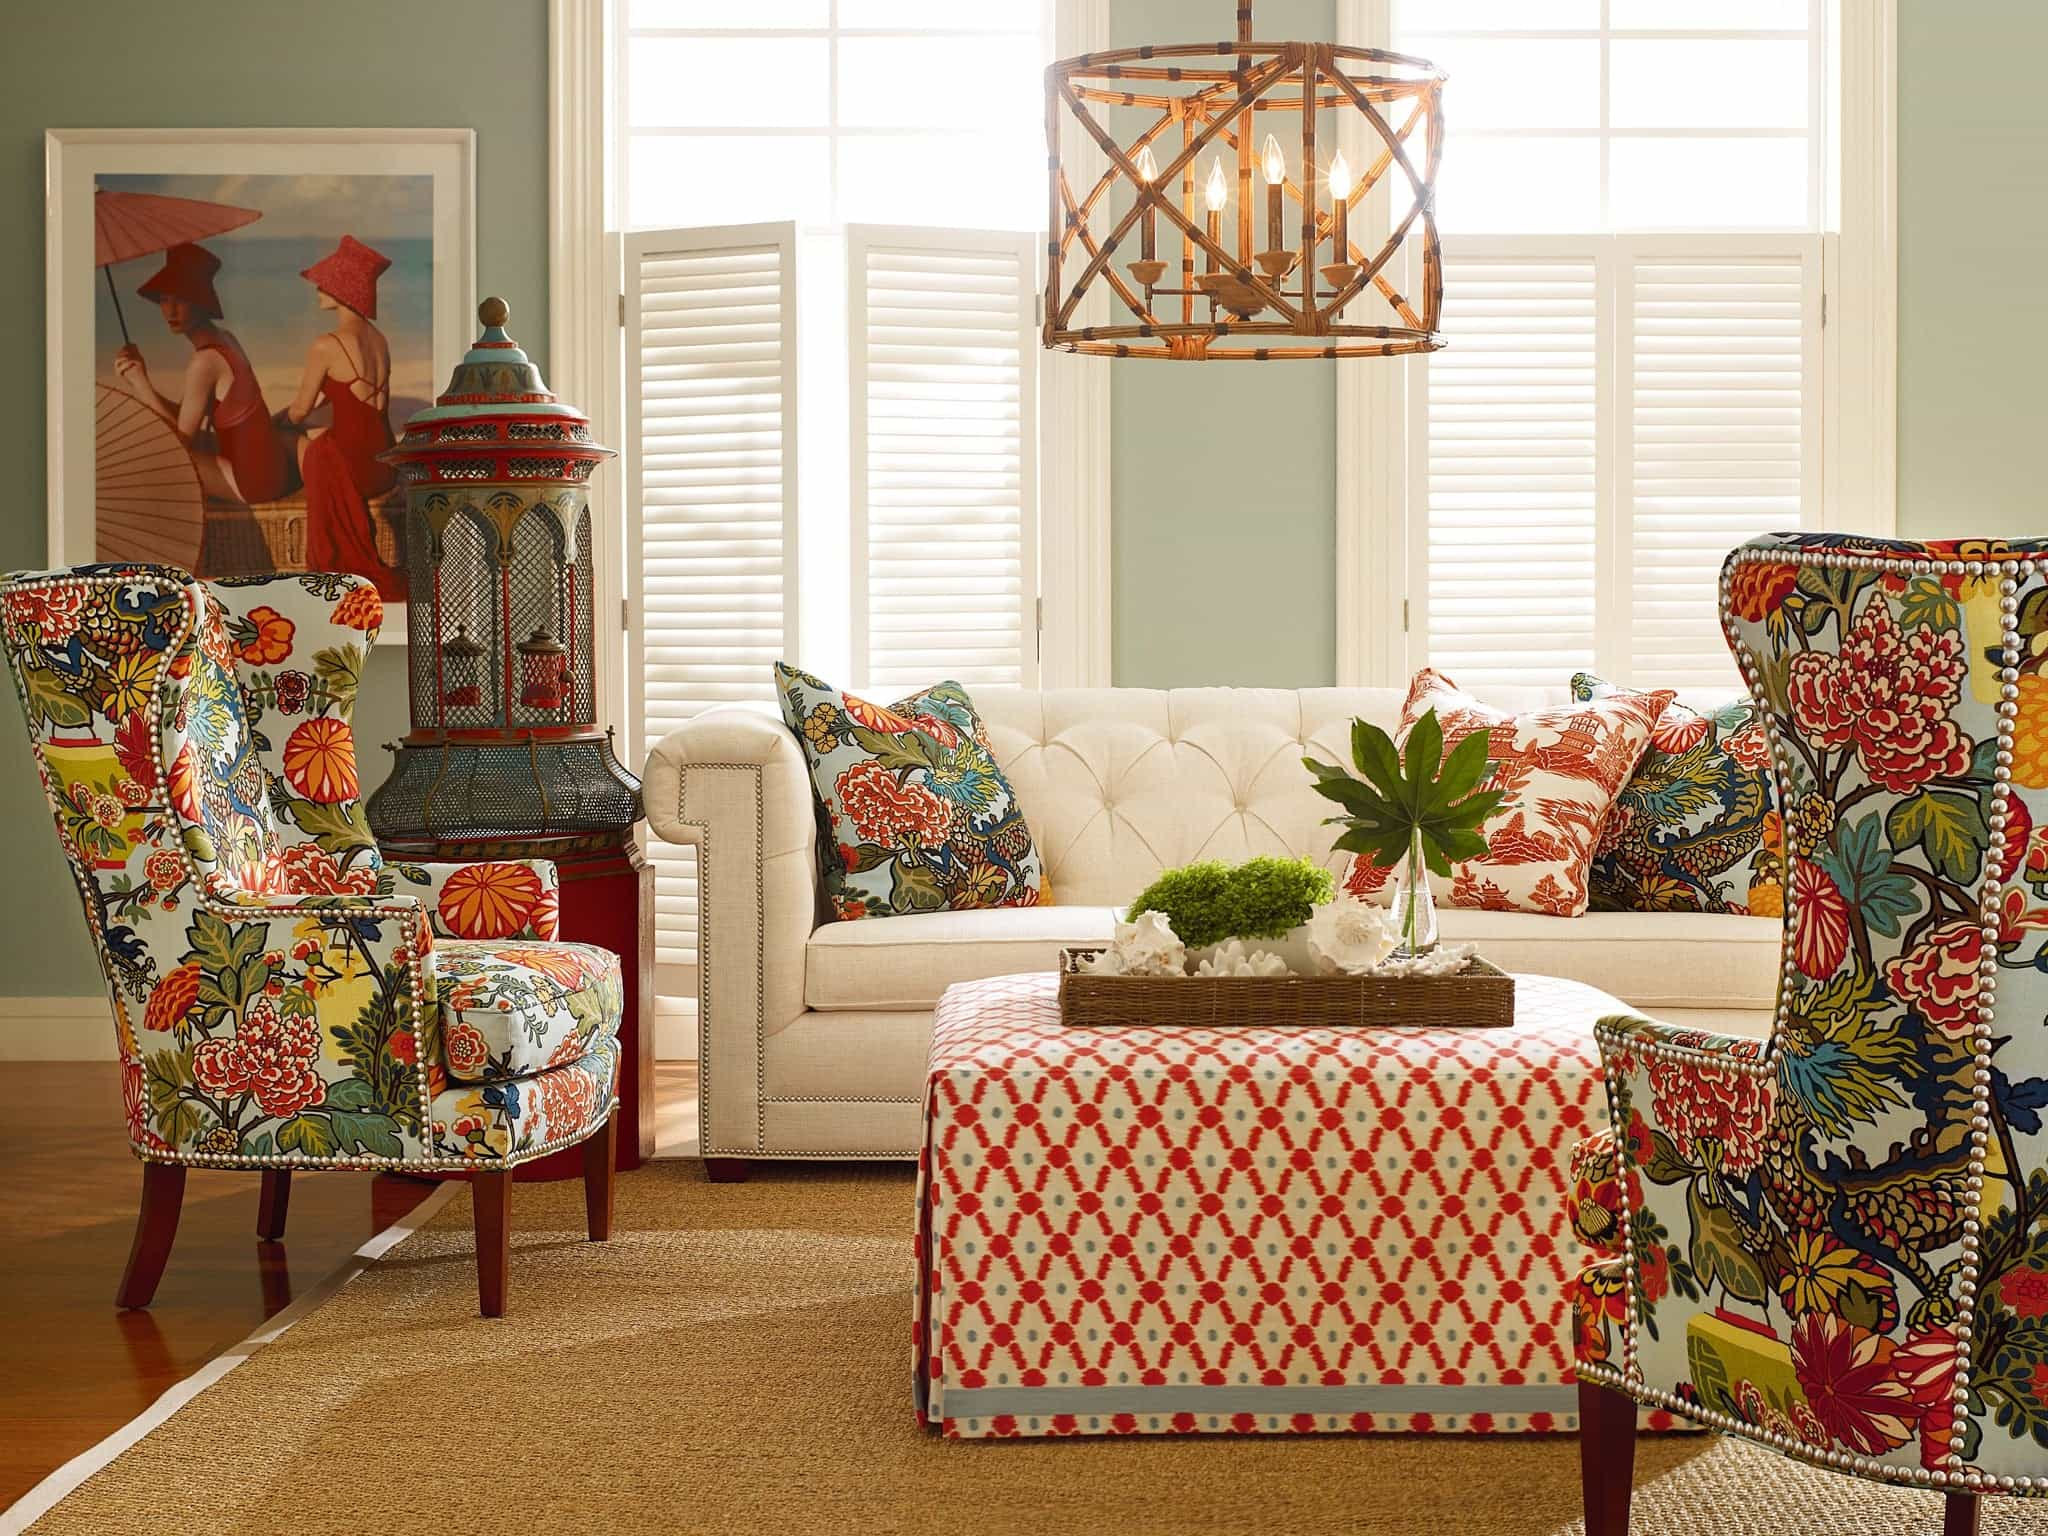 Featured Image of Colorful Patterns And Tropical Accents Living Room Decor